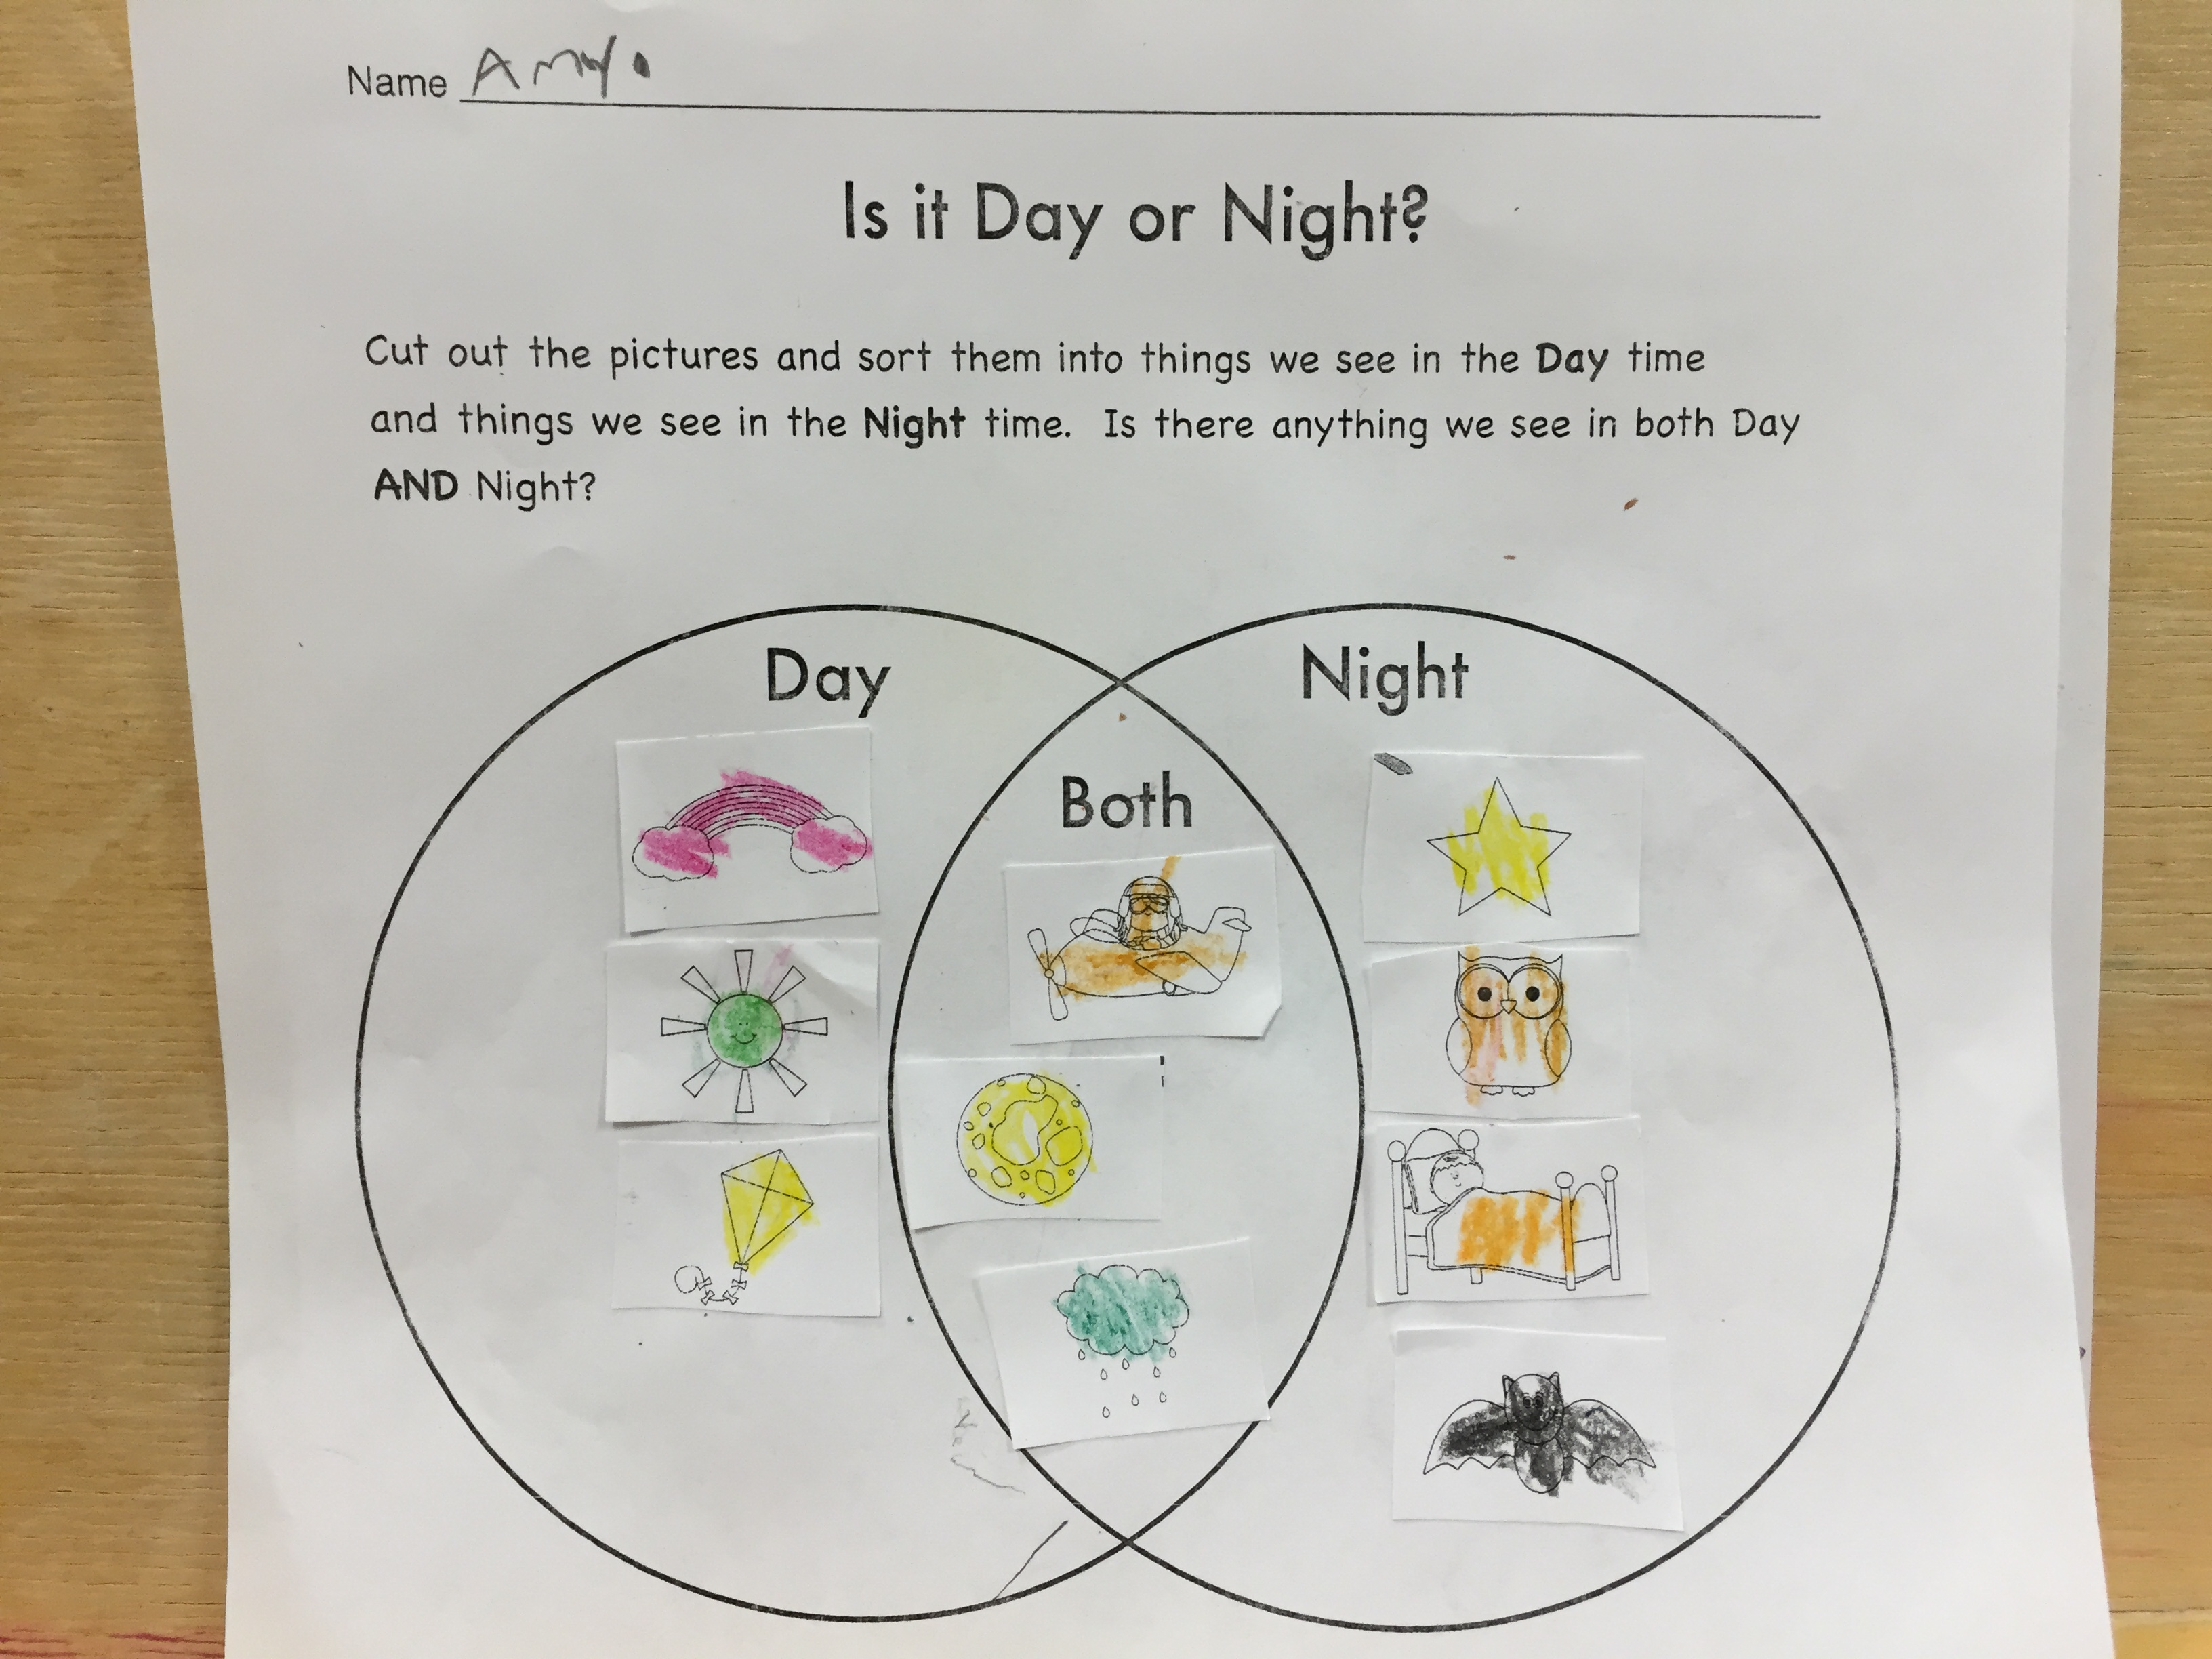 Worksheet For Preschool And Day Sky Night Sky On